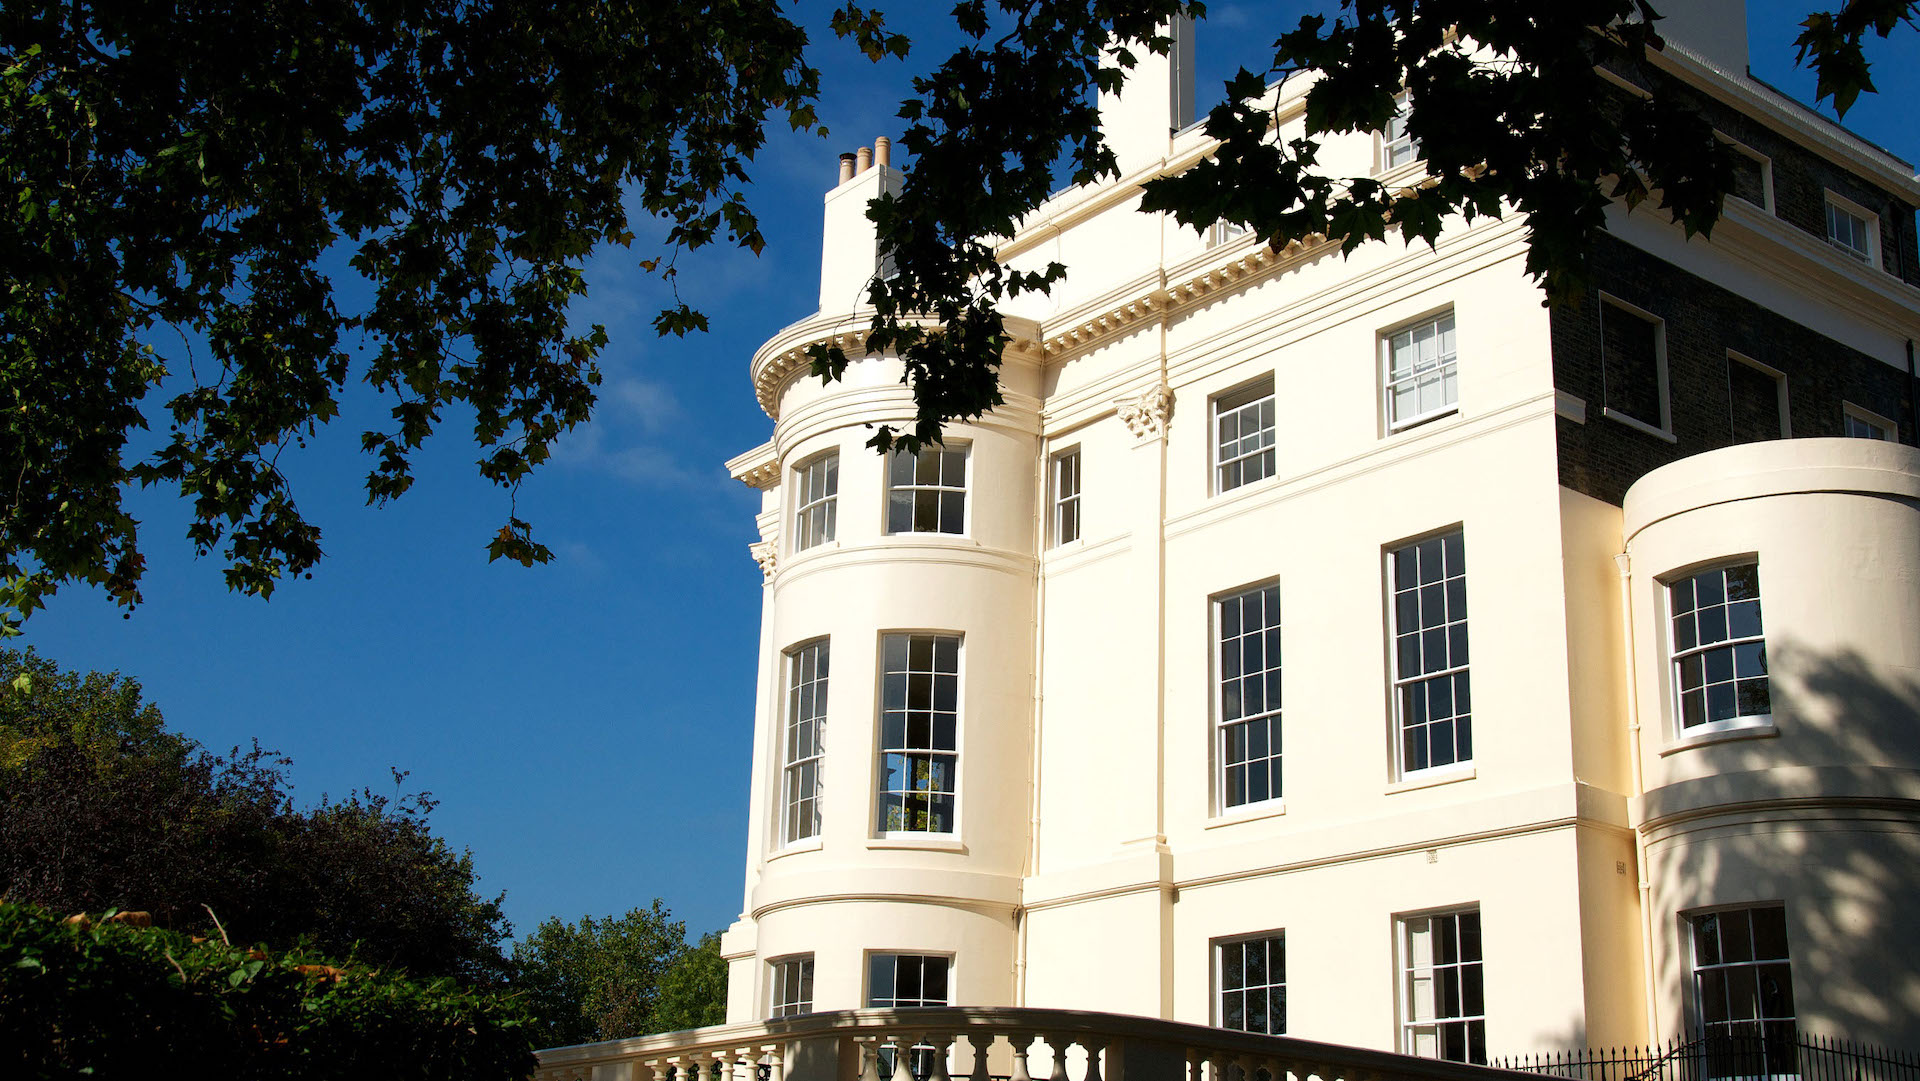 Regency building in West London, with image taken from ground looking up with beautiful clear blue sky in background.